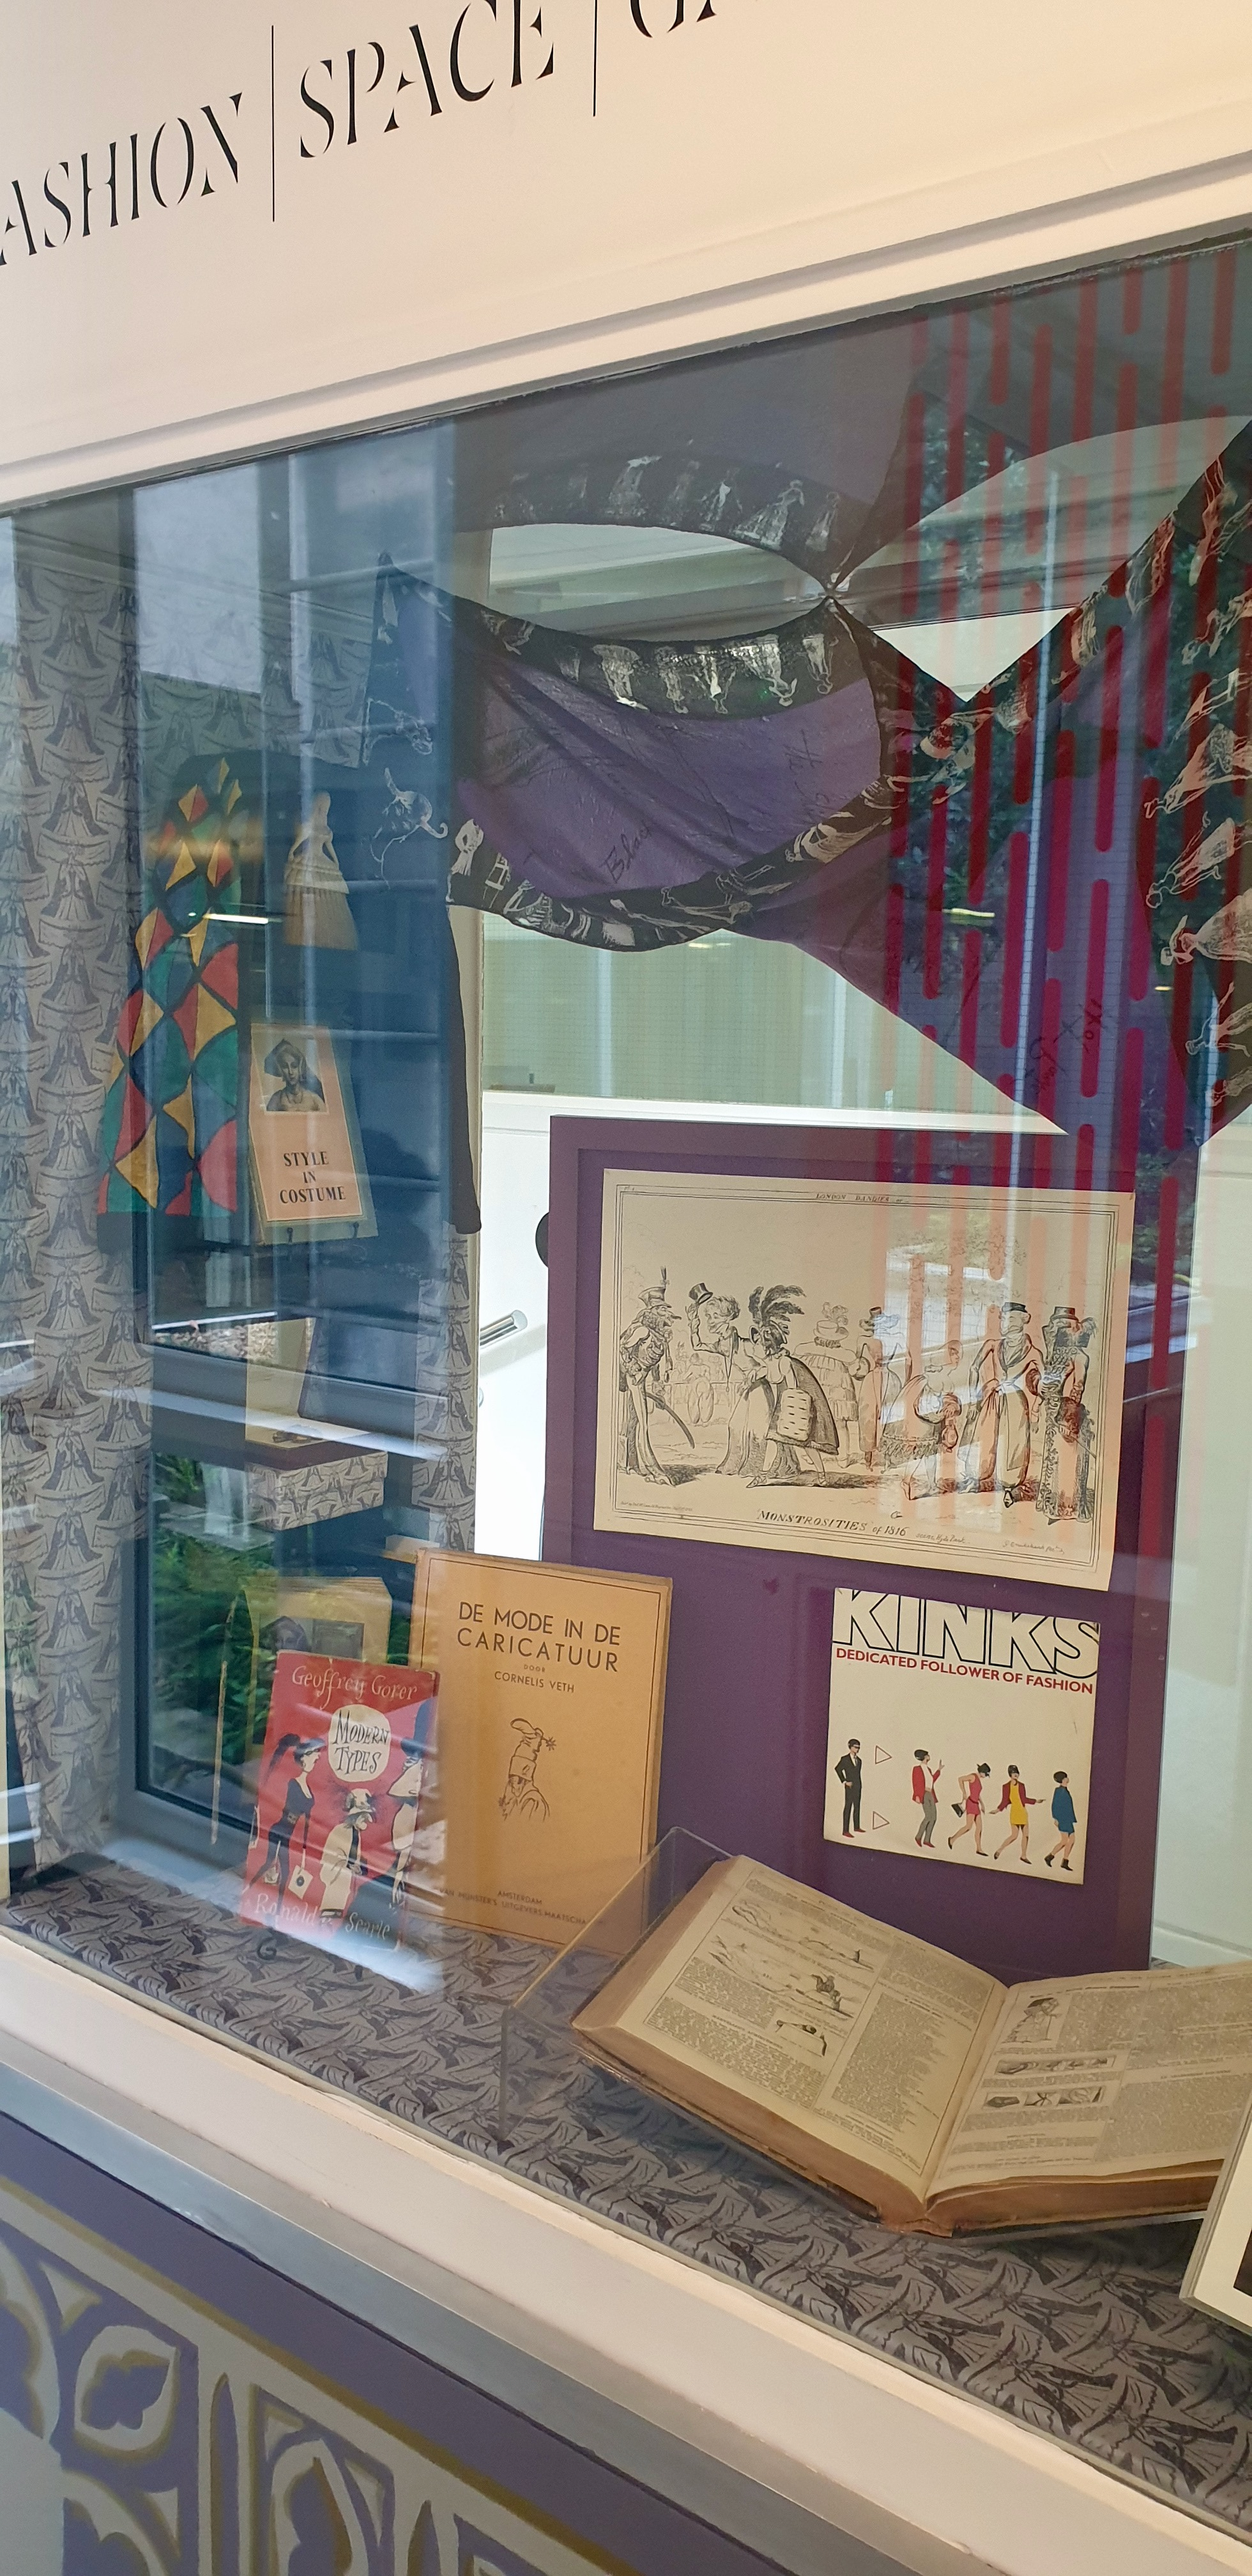 Display of exhibition in vitrine